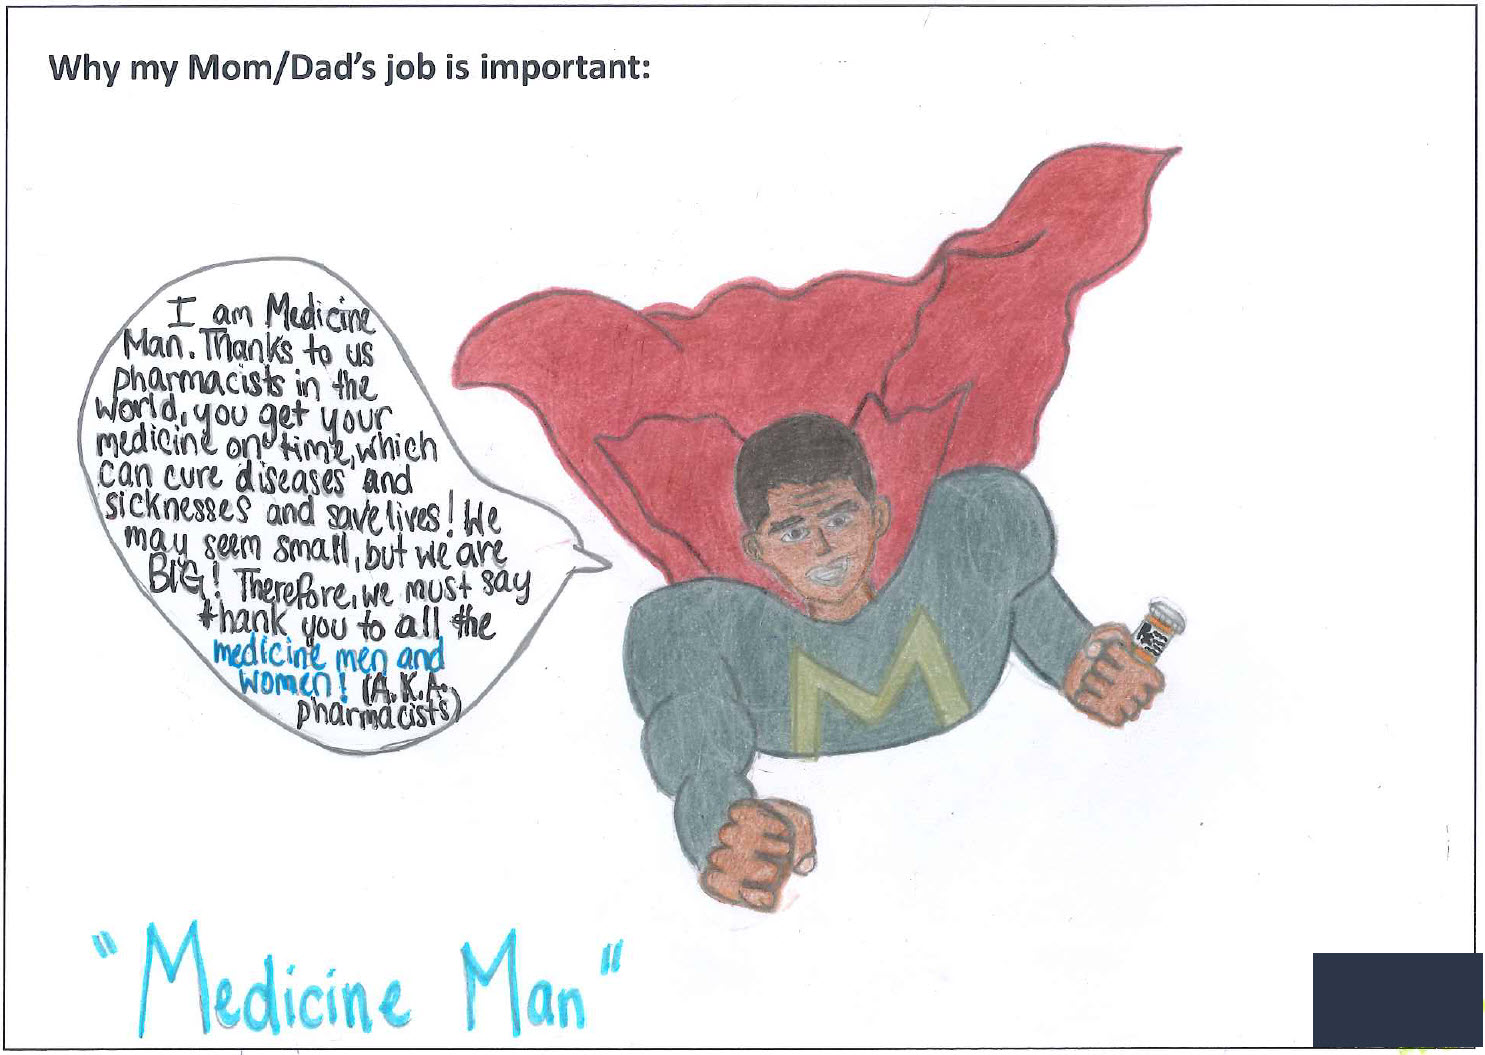 drawing by a child of a flying superhero praising pharmacists for their work